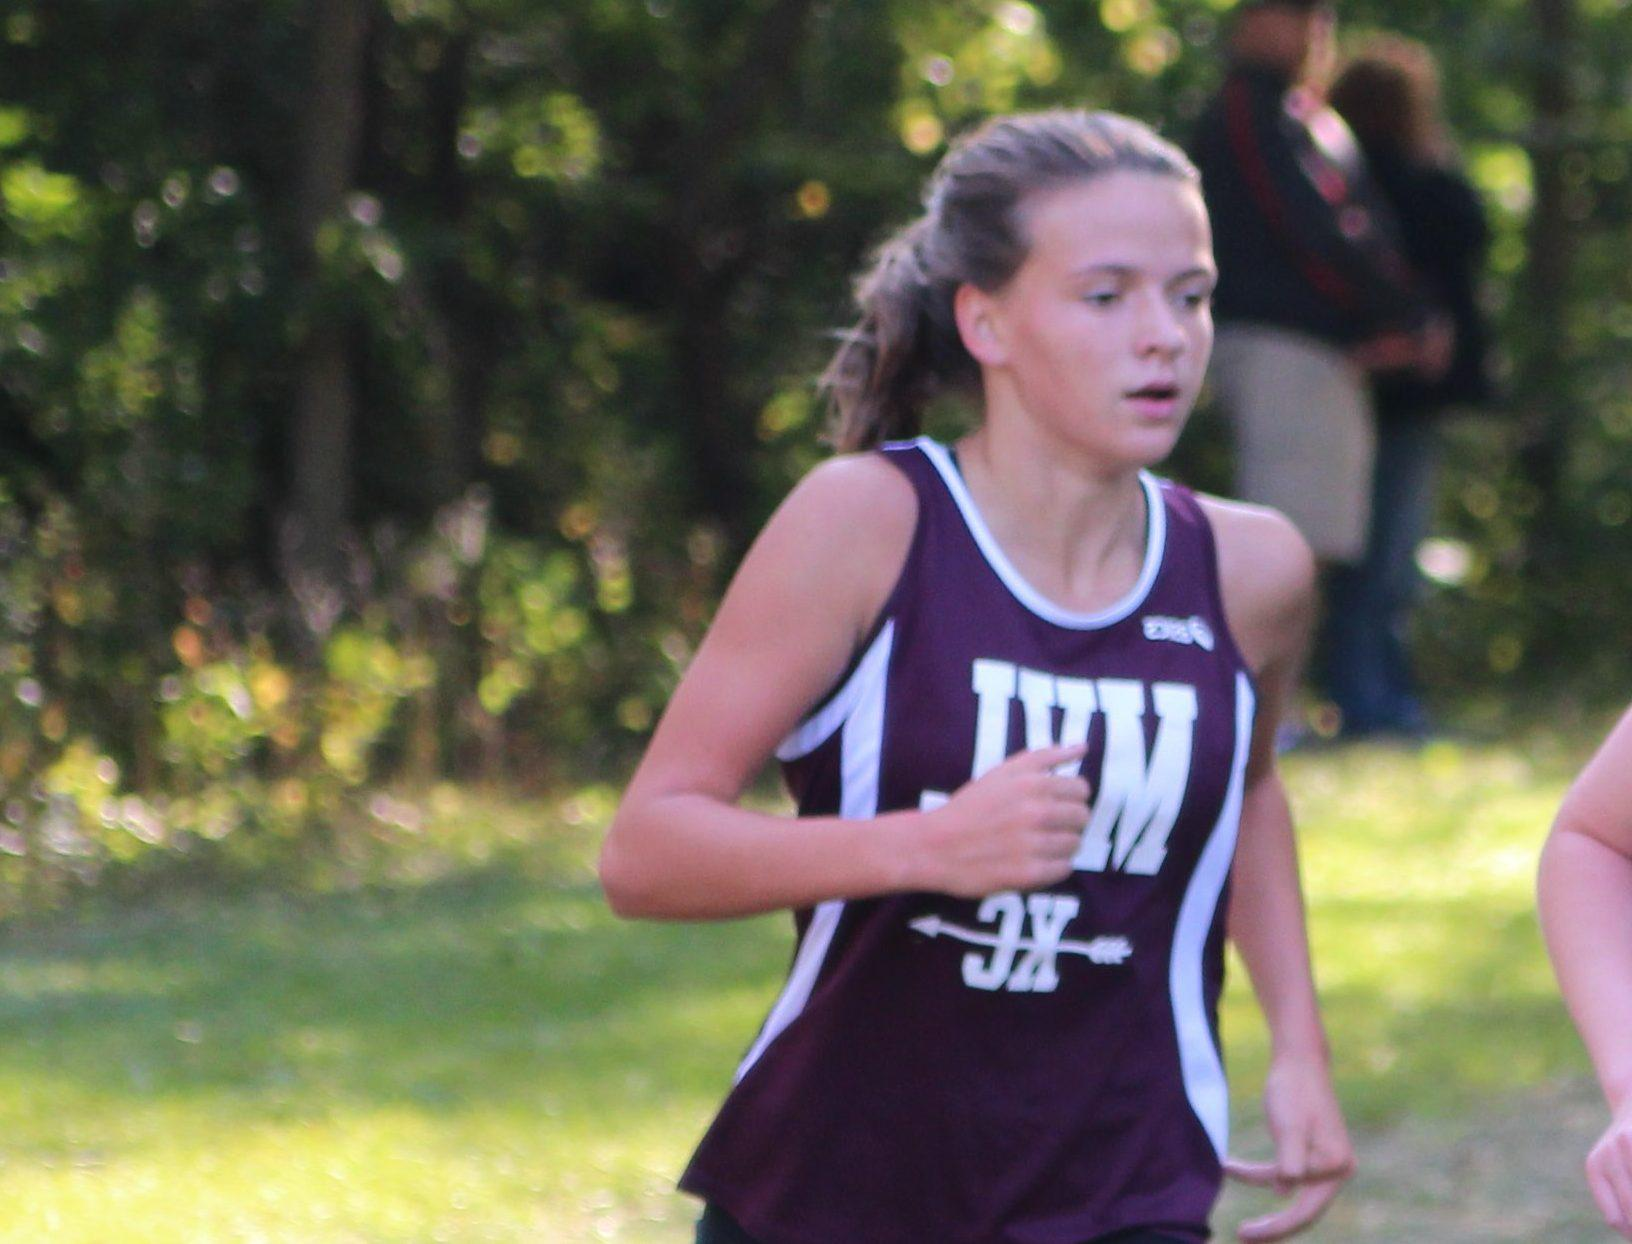 Aubrey Frey qualified for the state meet as an individual. She is pictured running in September. Photo by Ben McGuire.